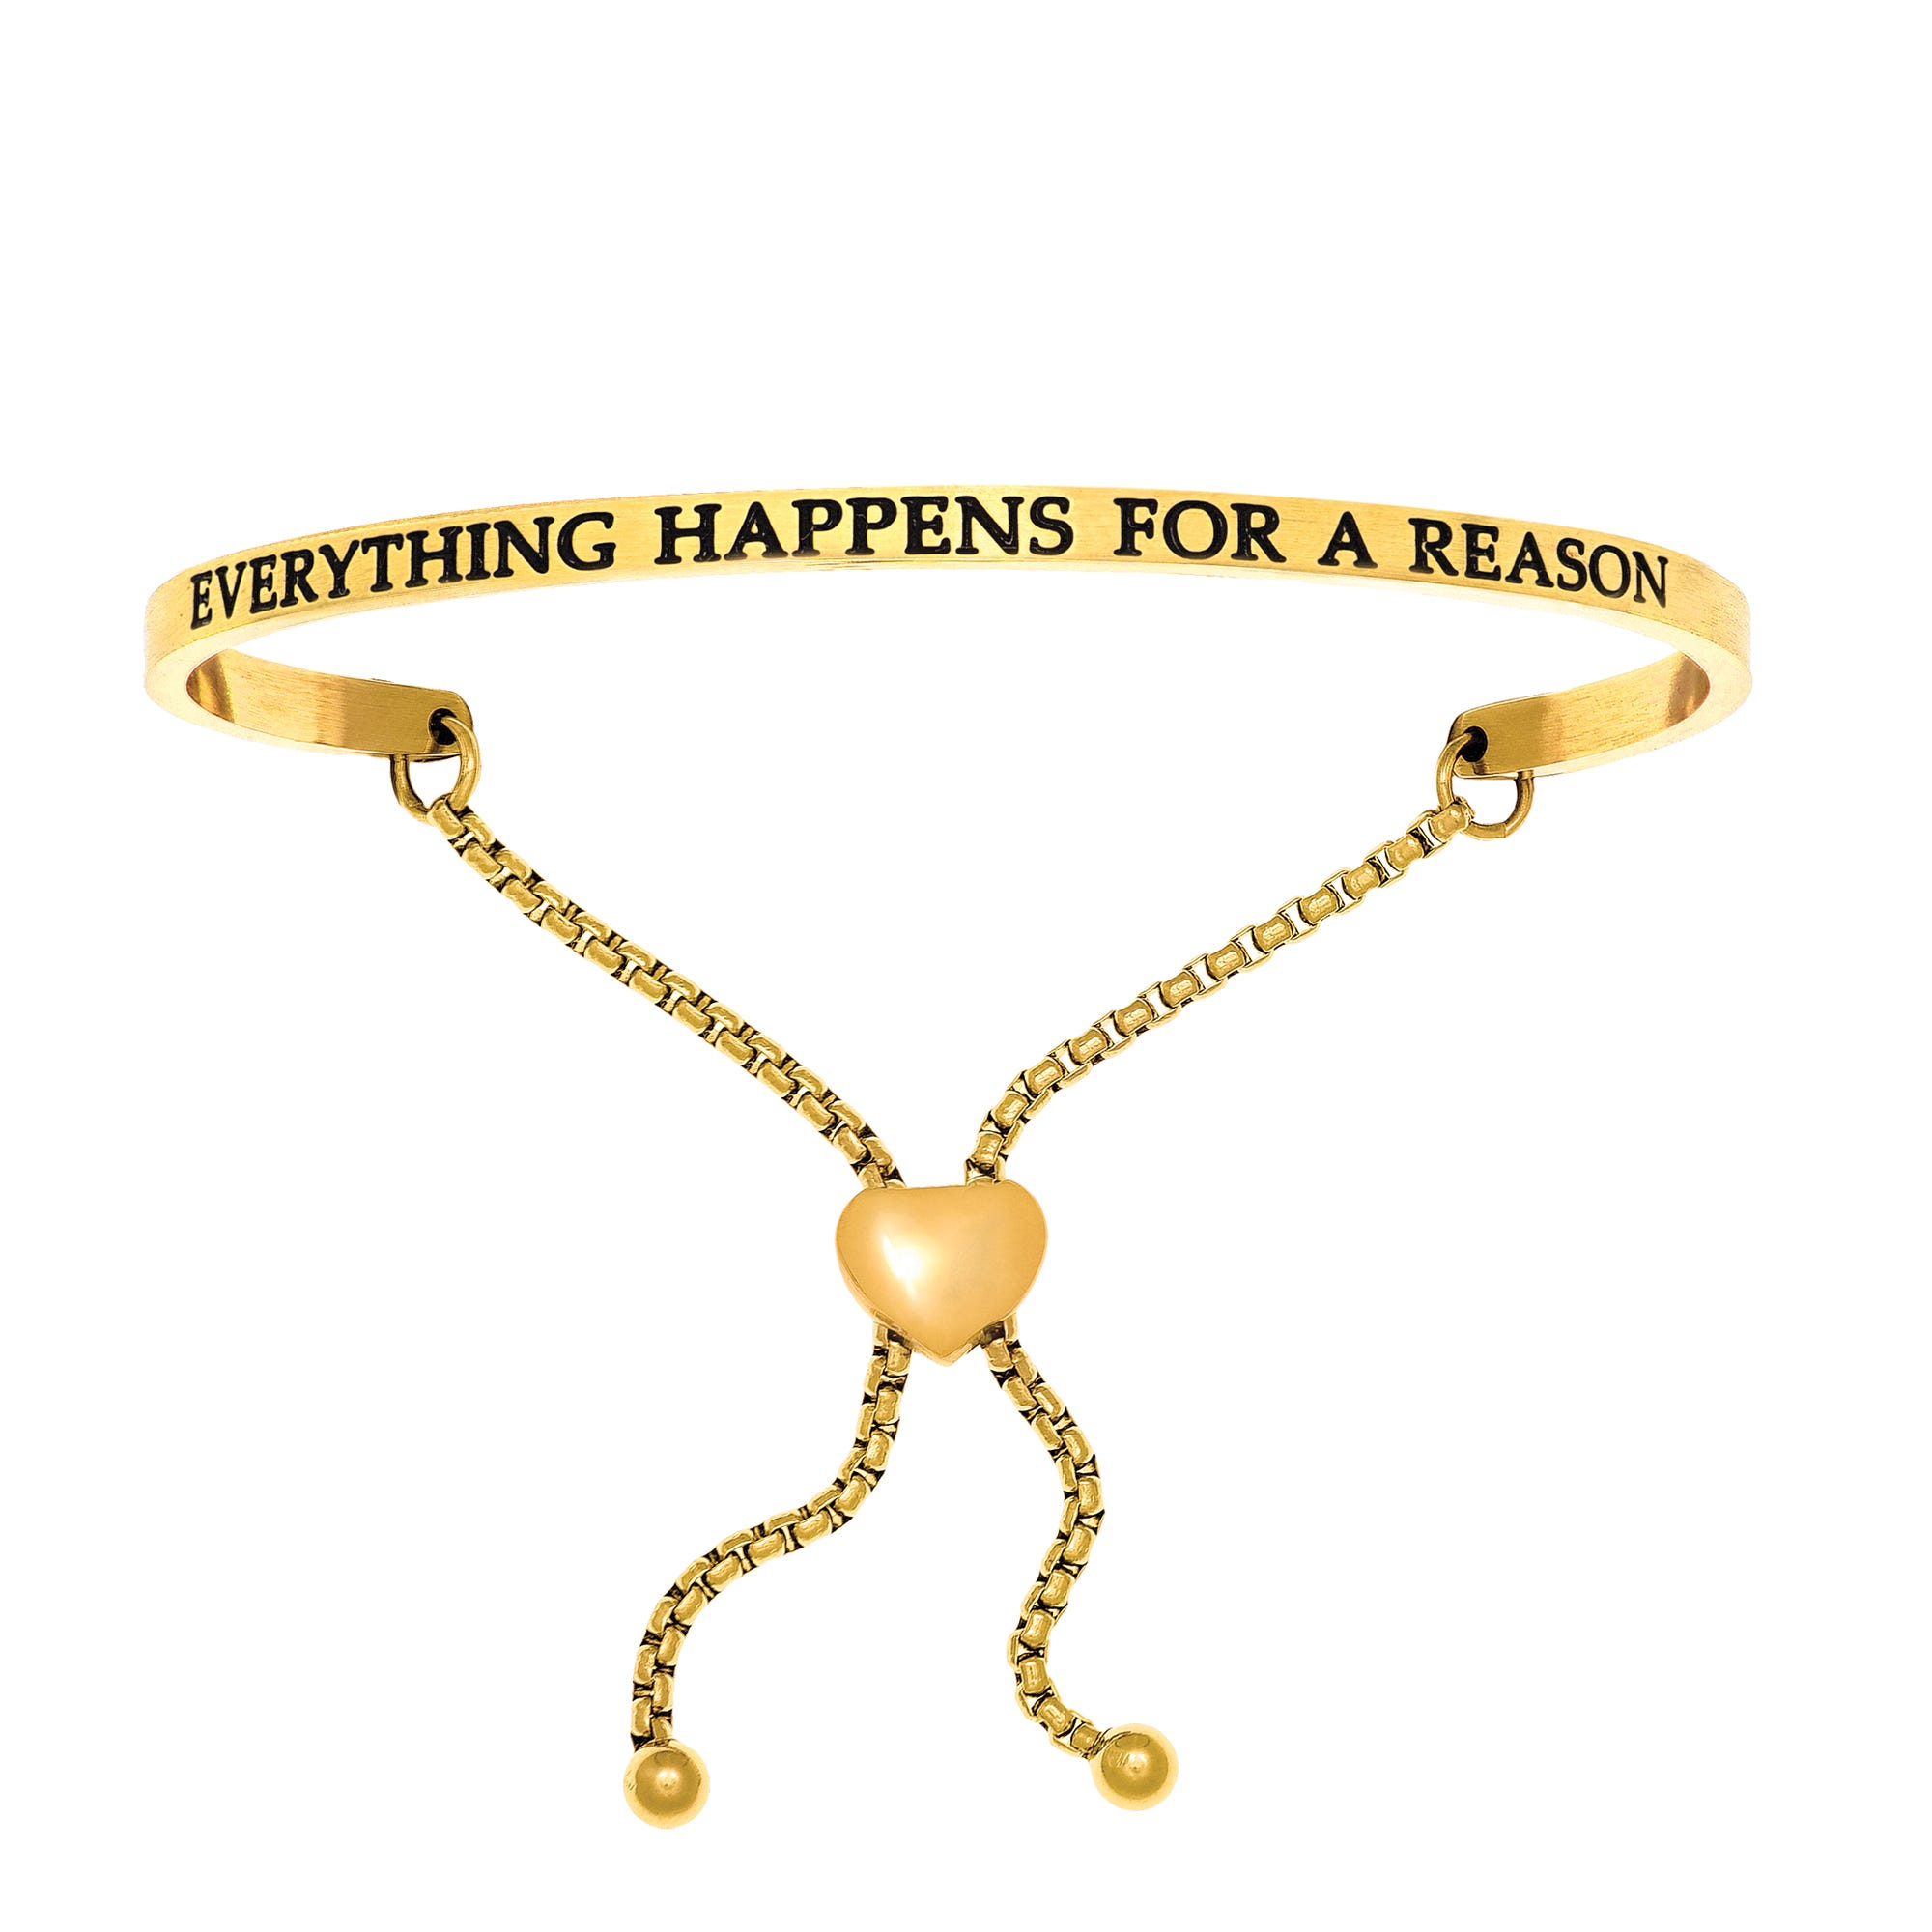 Everything Happens For A Reason. Intuitions Bolo Bracelet in Yellow Stainless Steel